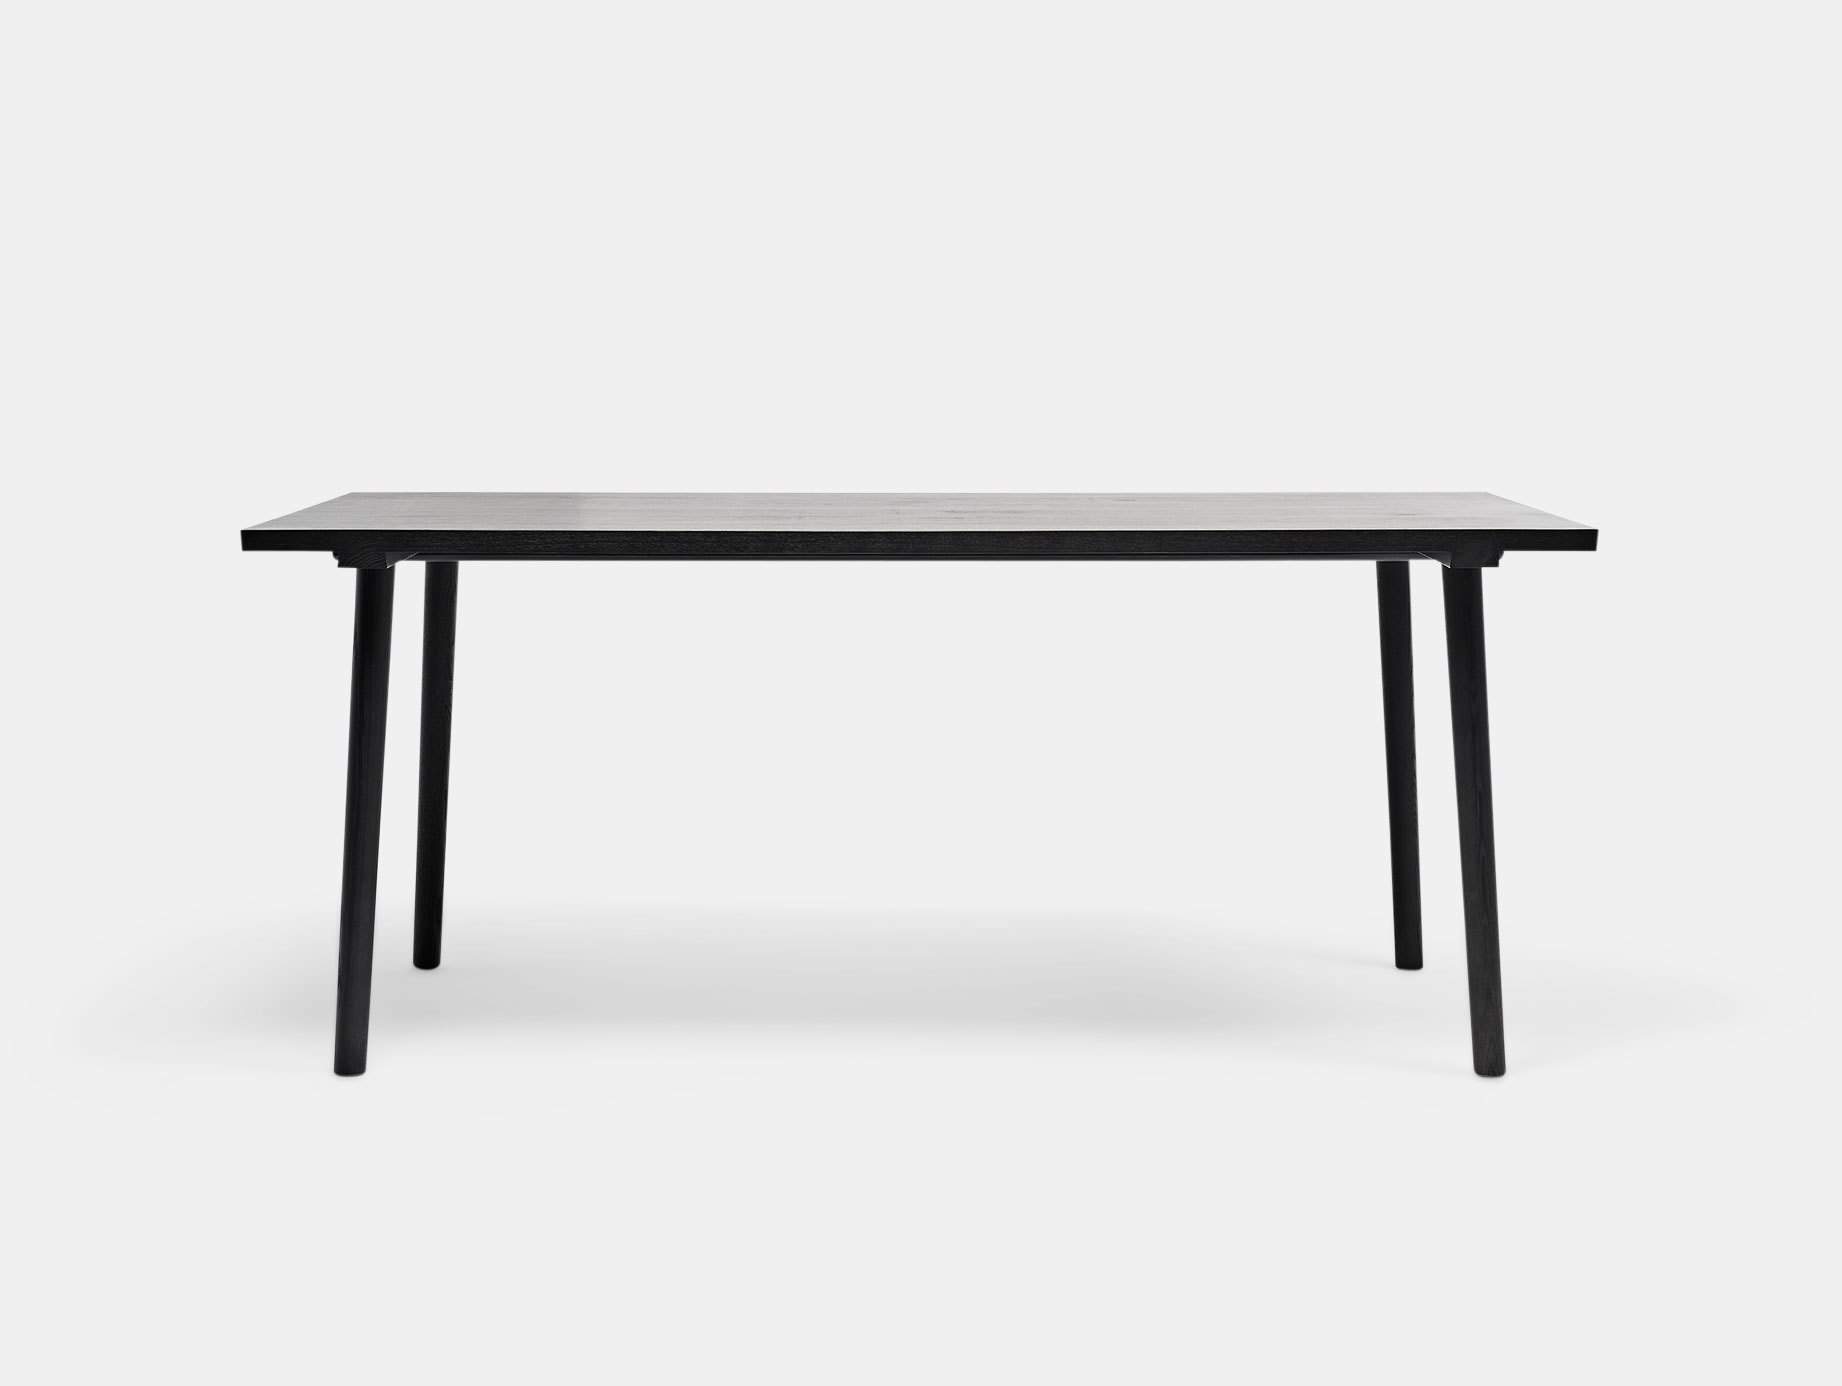 Mattiazzi Facile Table Black Lambl Homburger Meyer